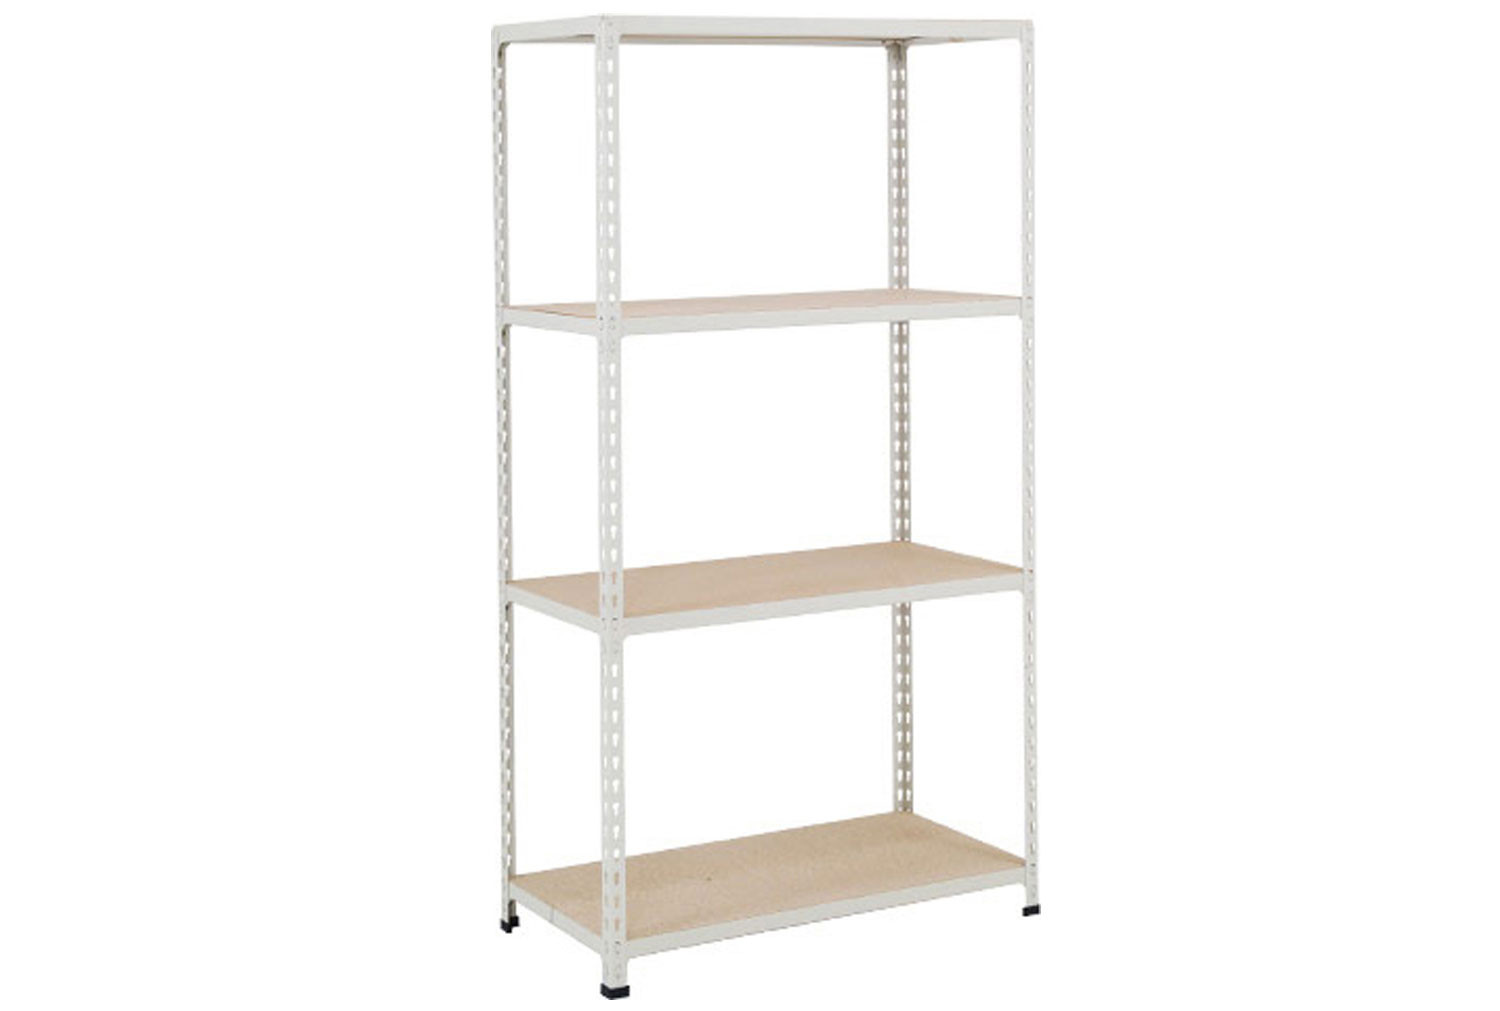 Rapid 2 Shelving With 4 Chipboard Shelves 915wx1600h (Grey)